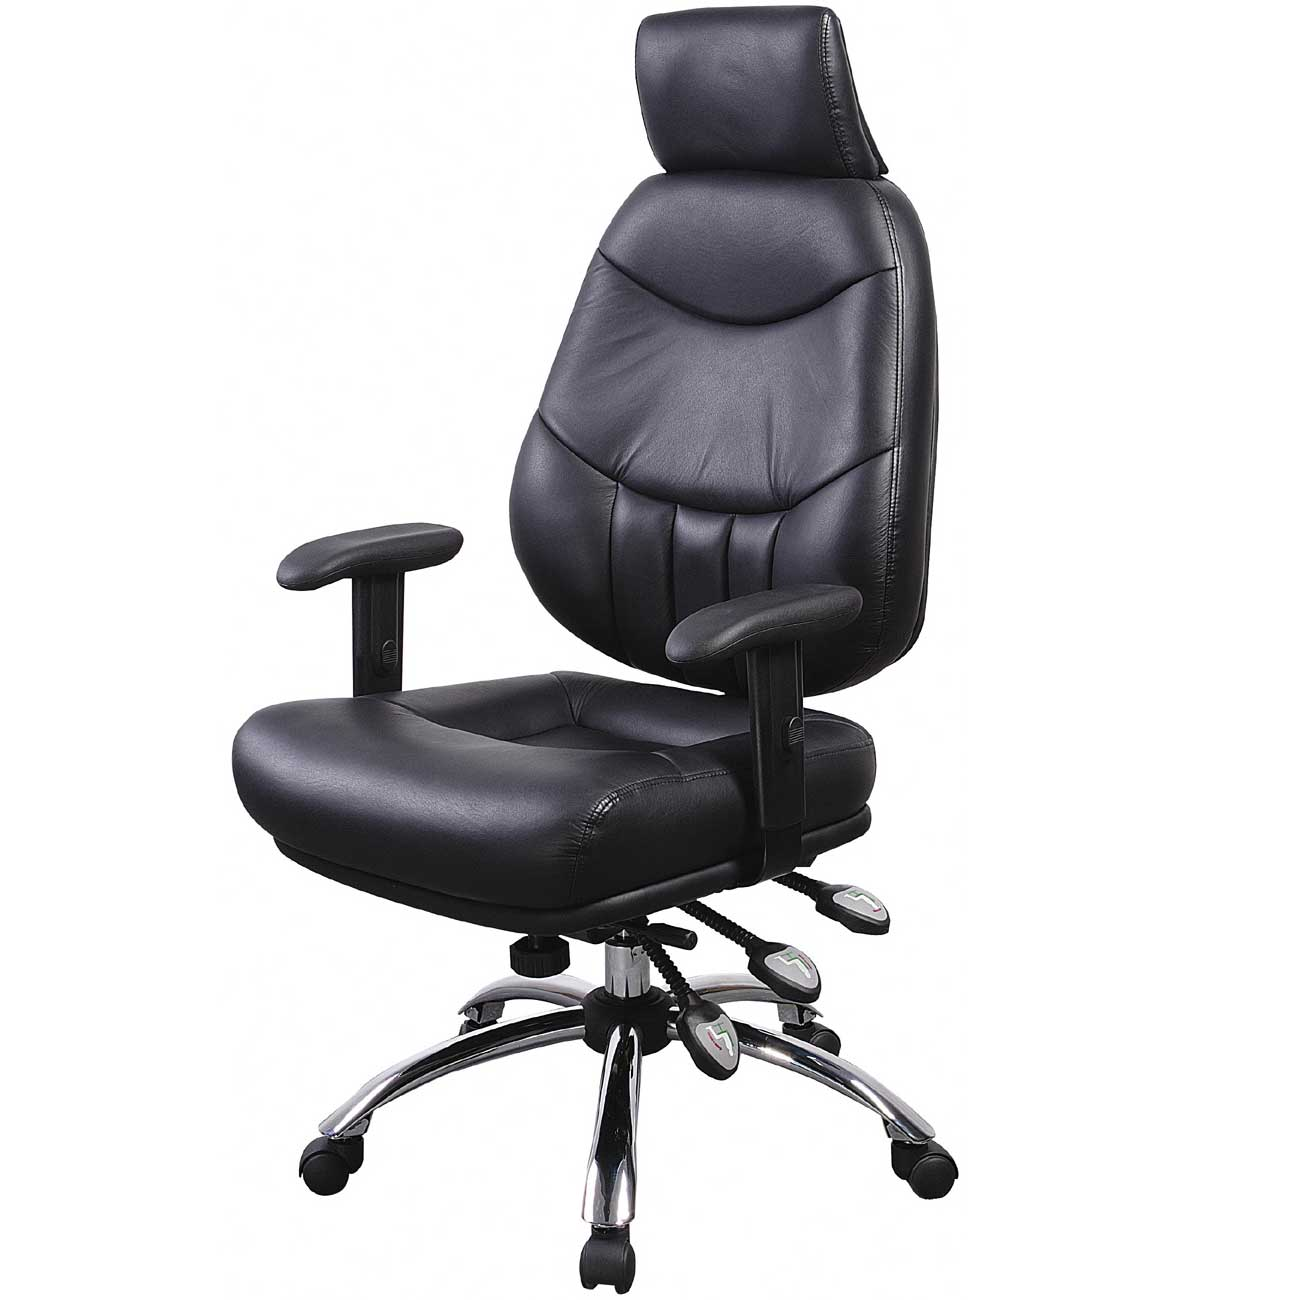 Ergonomic Arm Task Chairs with Headrest